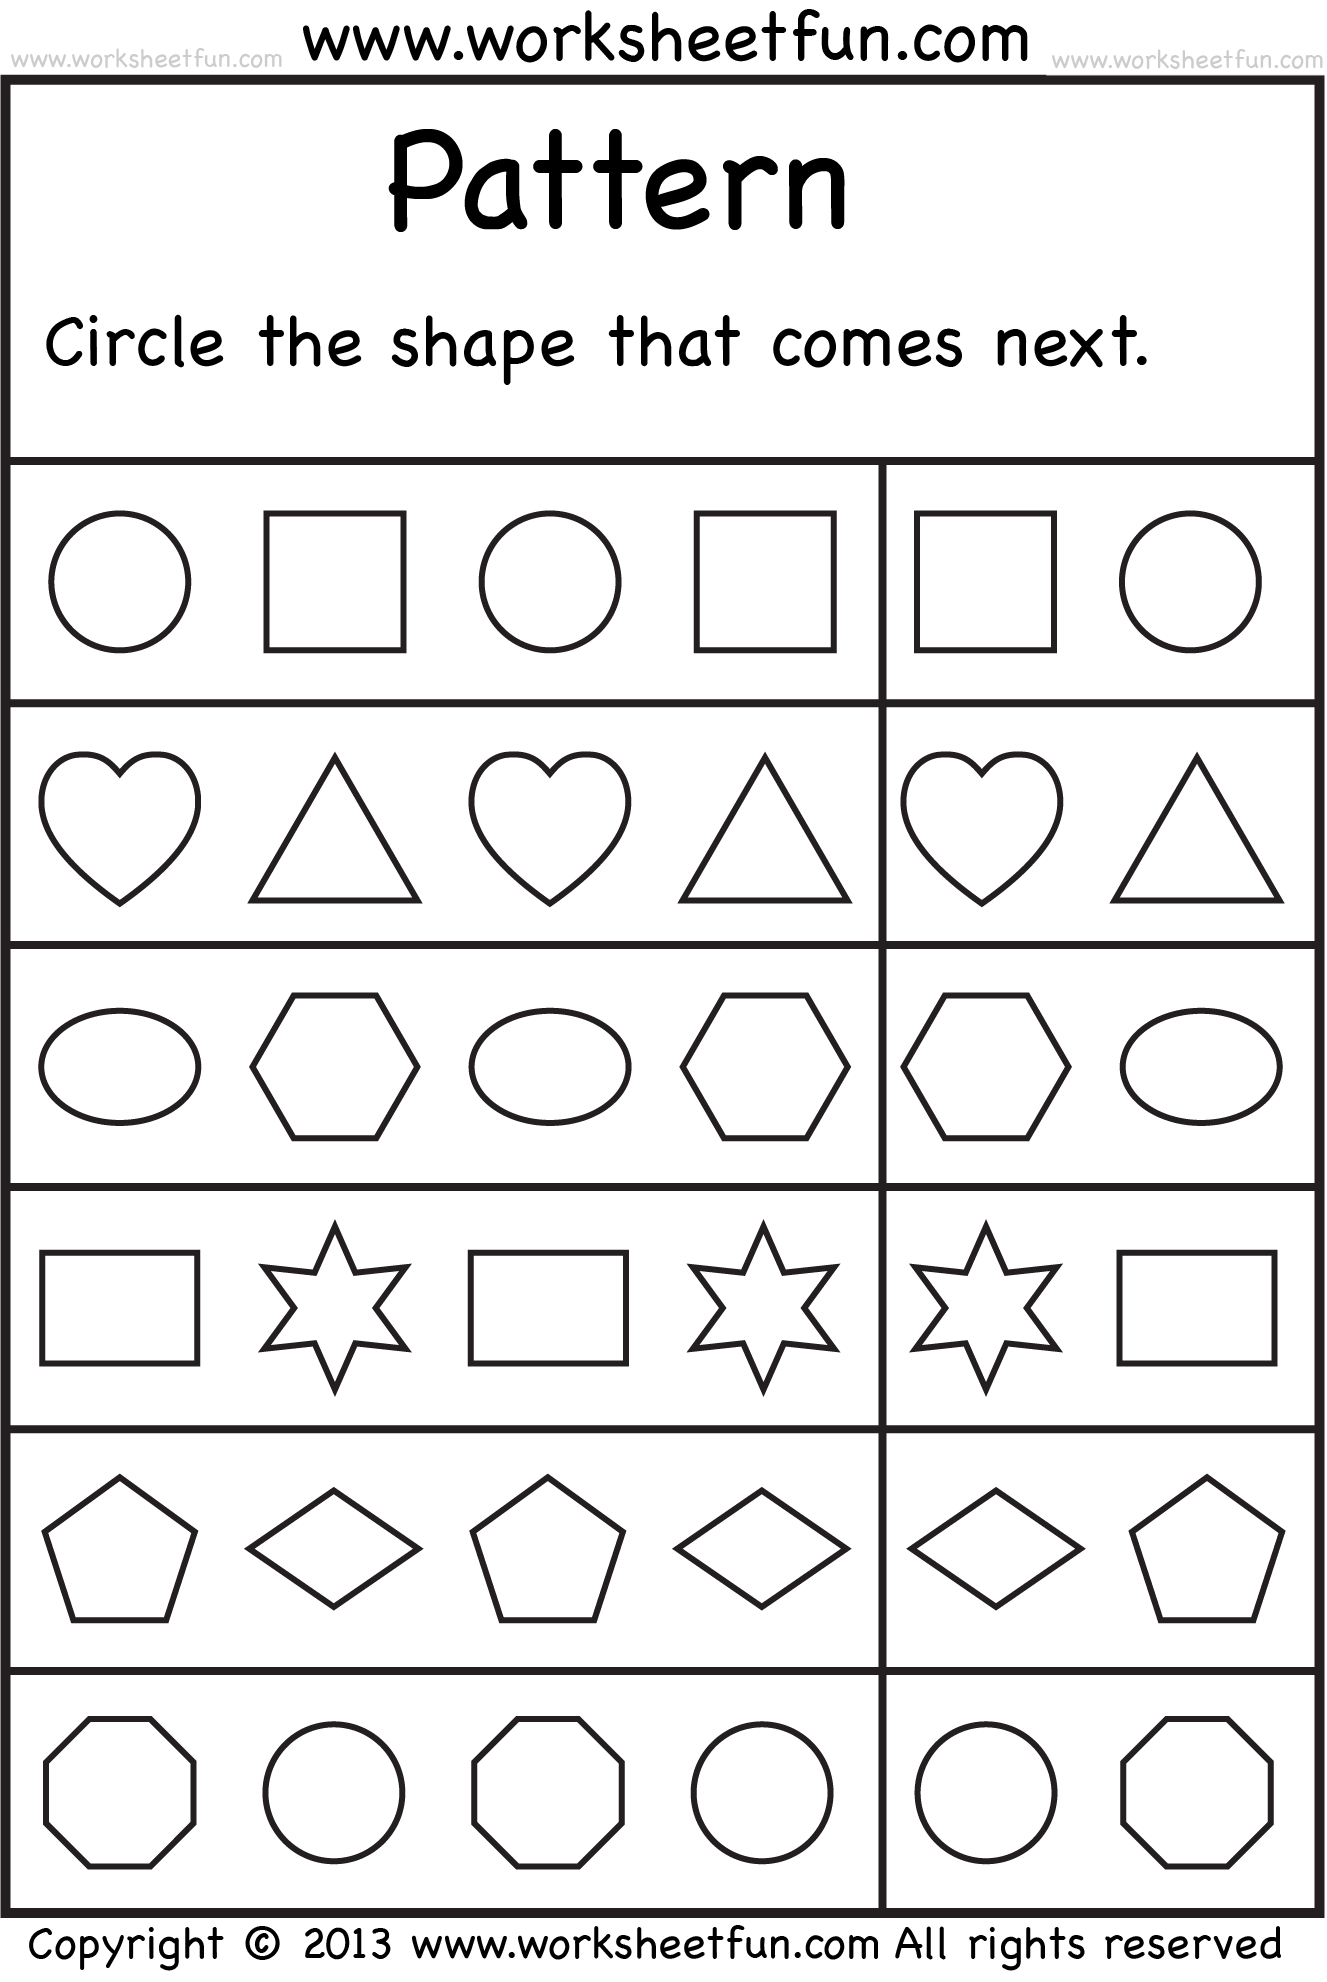 Weirdmailus  Terrific  Images About School Worksheets On Pinterest  Number Words  With Foxy  Images About School Worksheets On Pinterest  Number Words Alphabet Worksheets And Free Printable Kindergarten Worksheets With Alluring Fever  Worksheets Also Coordinate System Worksheets In Addition Math Logic Puzzle Worksheets And Beginning Blend Worksheets As Well As E Mc Worksheet Additionally Compare And Contrast Venn Diagram Worksheets From Pinterestcom With Weirdmailus  Foxy  Images About School Worksheets On Pinterest  Number Words  With Alluring  Images About School Worksheets On Pinterest  Number Words Alphabet Worksheets And Free Printable Kindergarten Worksheets And Terrific Fever  Worksheets Also Coordinate System Worksheets In Addition Math Logic Puzzle Worksheets From Pinterestcom